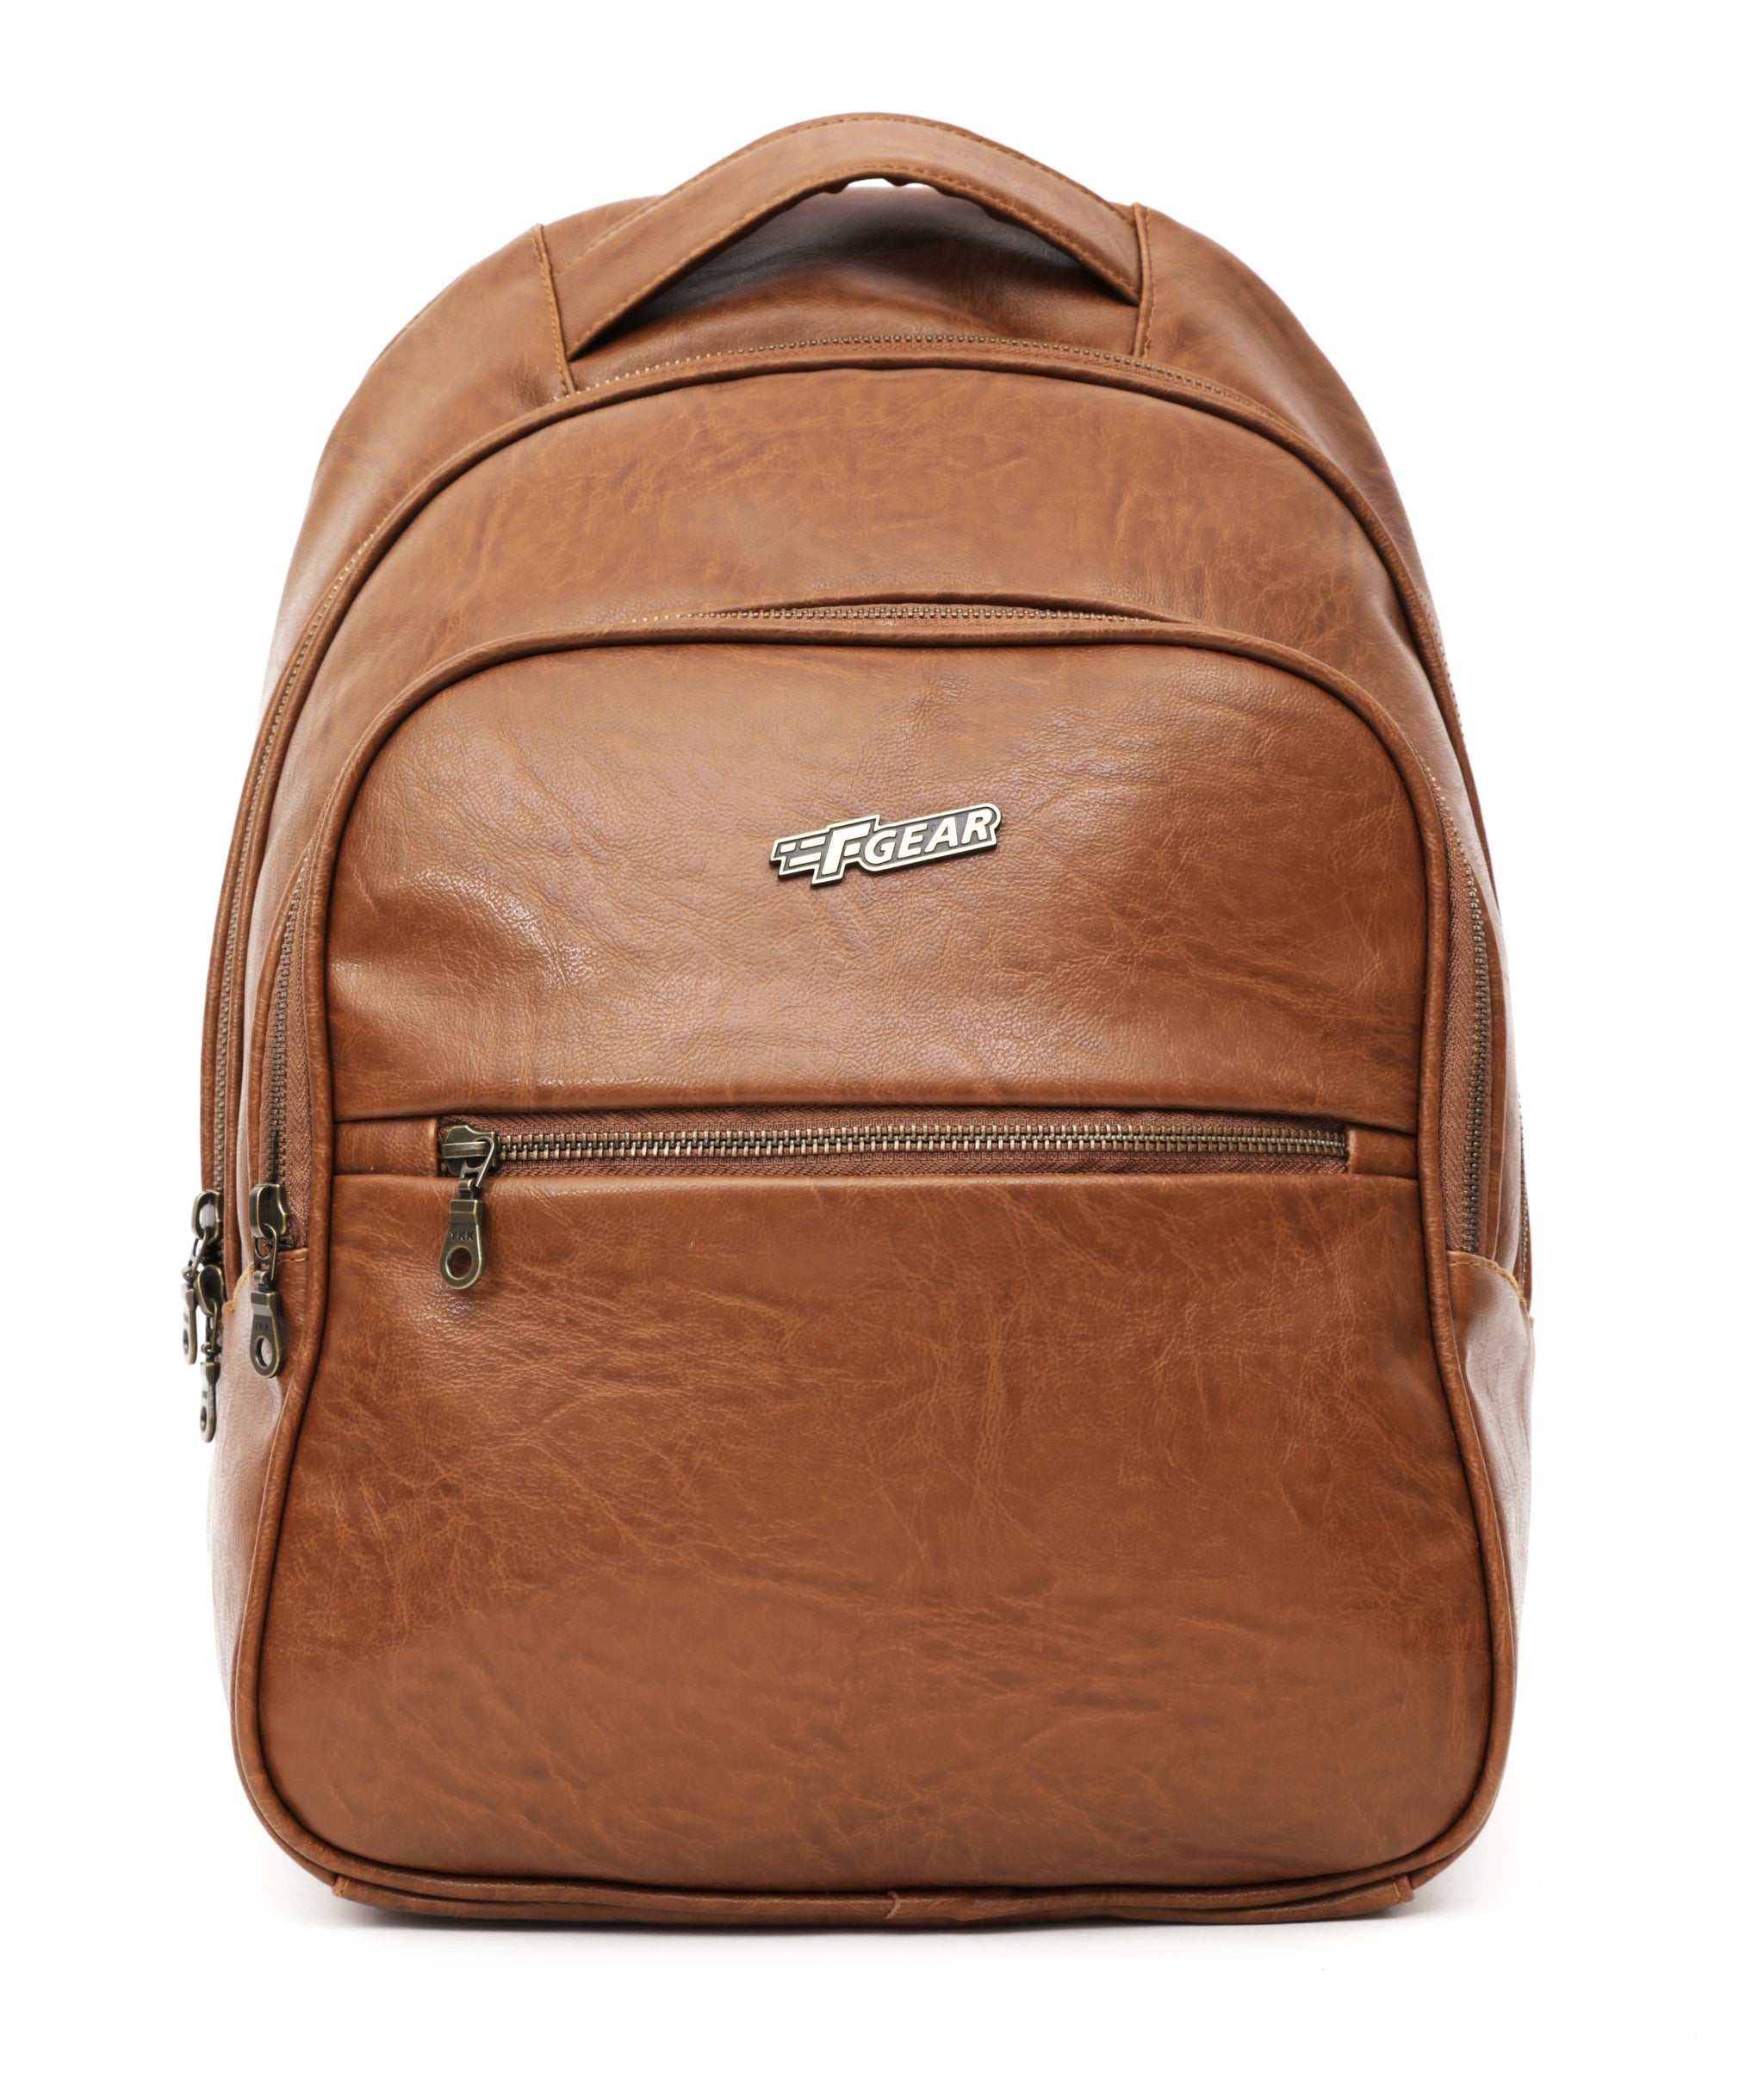 F Gear Glorious 18 Liters Laptop Backpack (Chestnut)